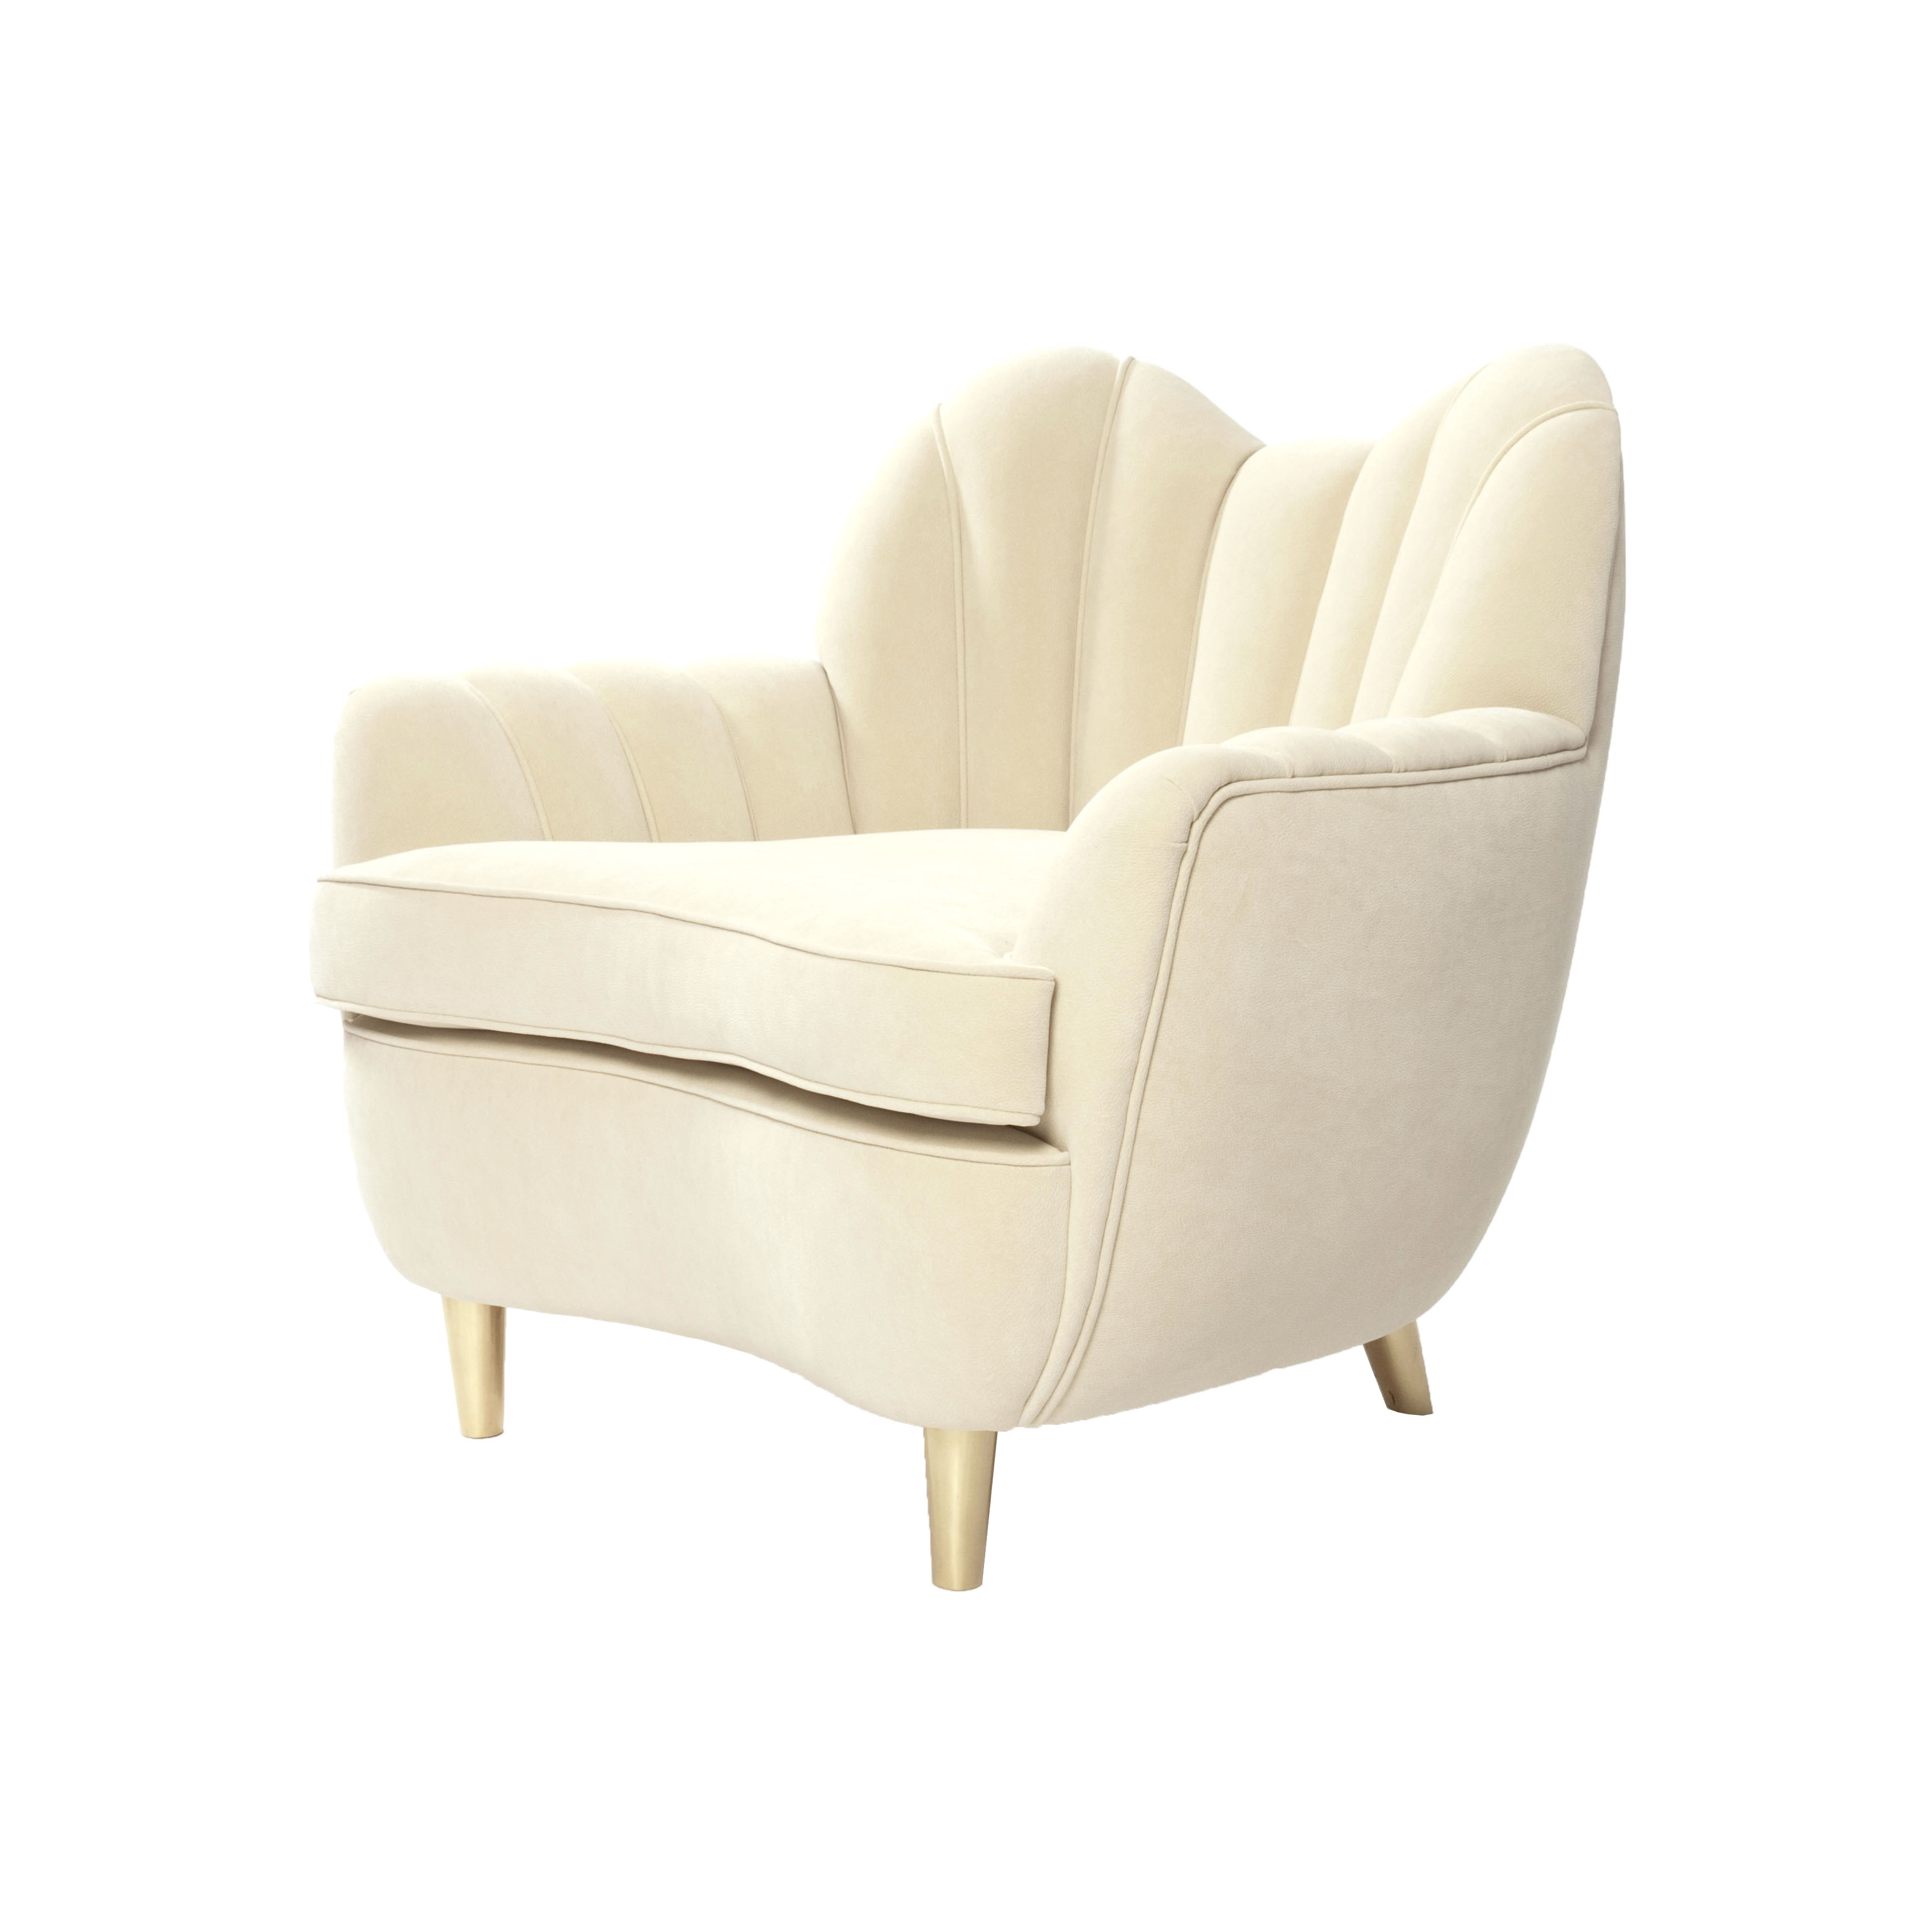 Modern armchair oscar les trois gar ons for Contemporary armchair